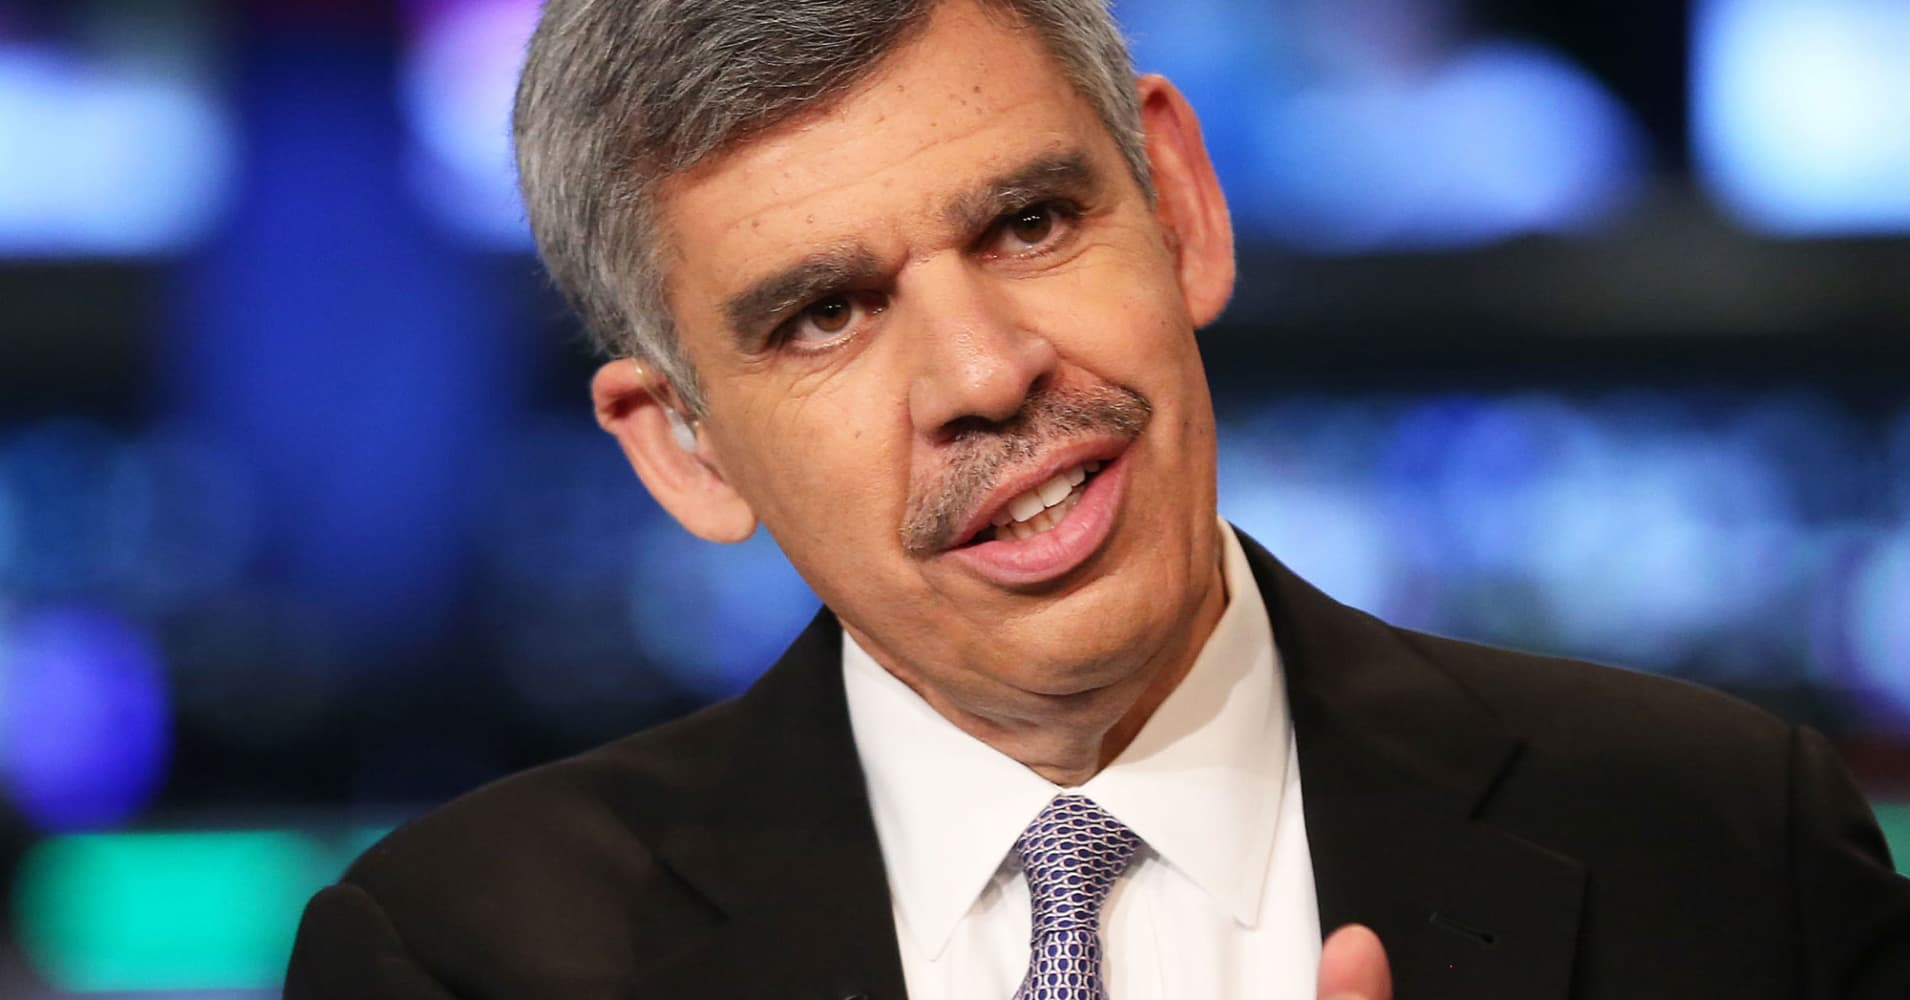 White House considering nomination of Mohamed El-Erian for Federal Reserve vice chair: Report